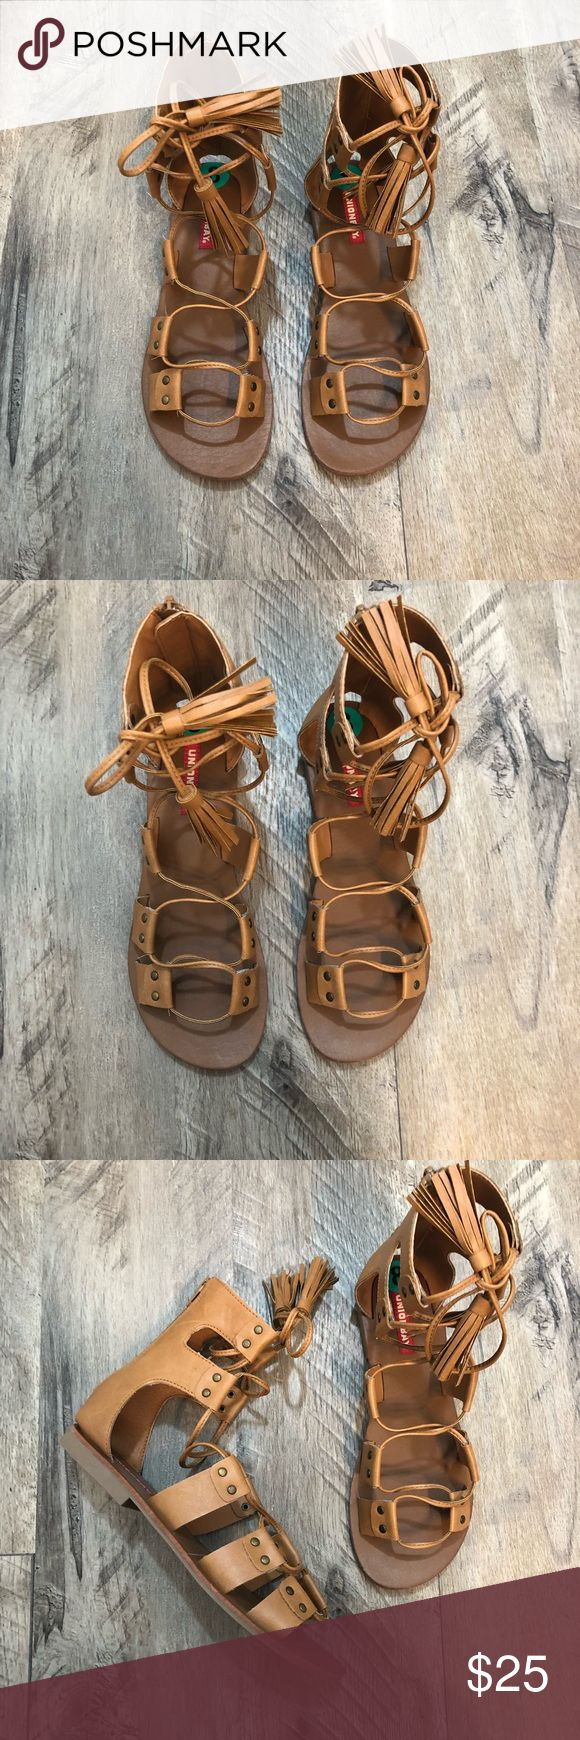 Gladiator Sandals Worn once brown gladiator sandals purchased from DSW. dsw Shoes